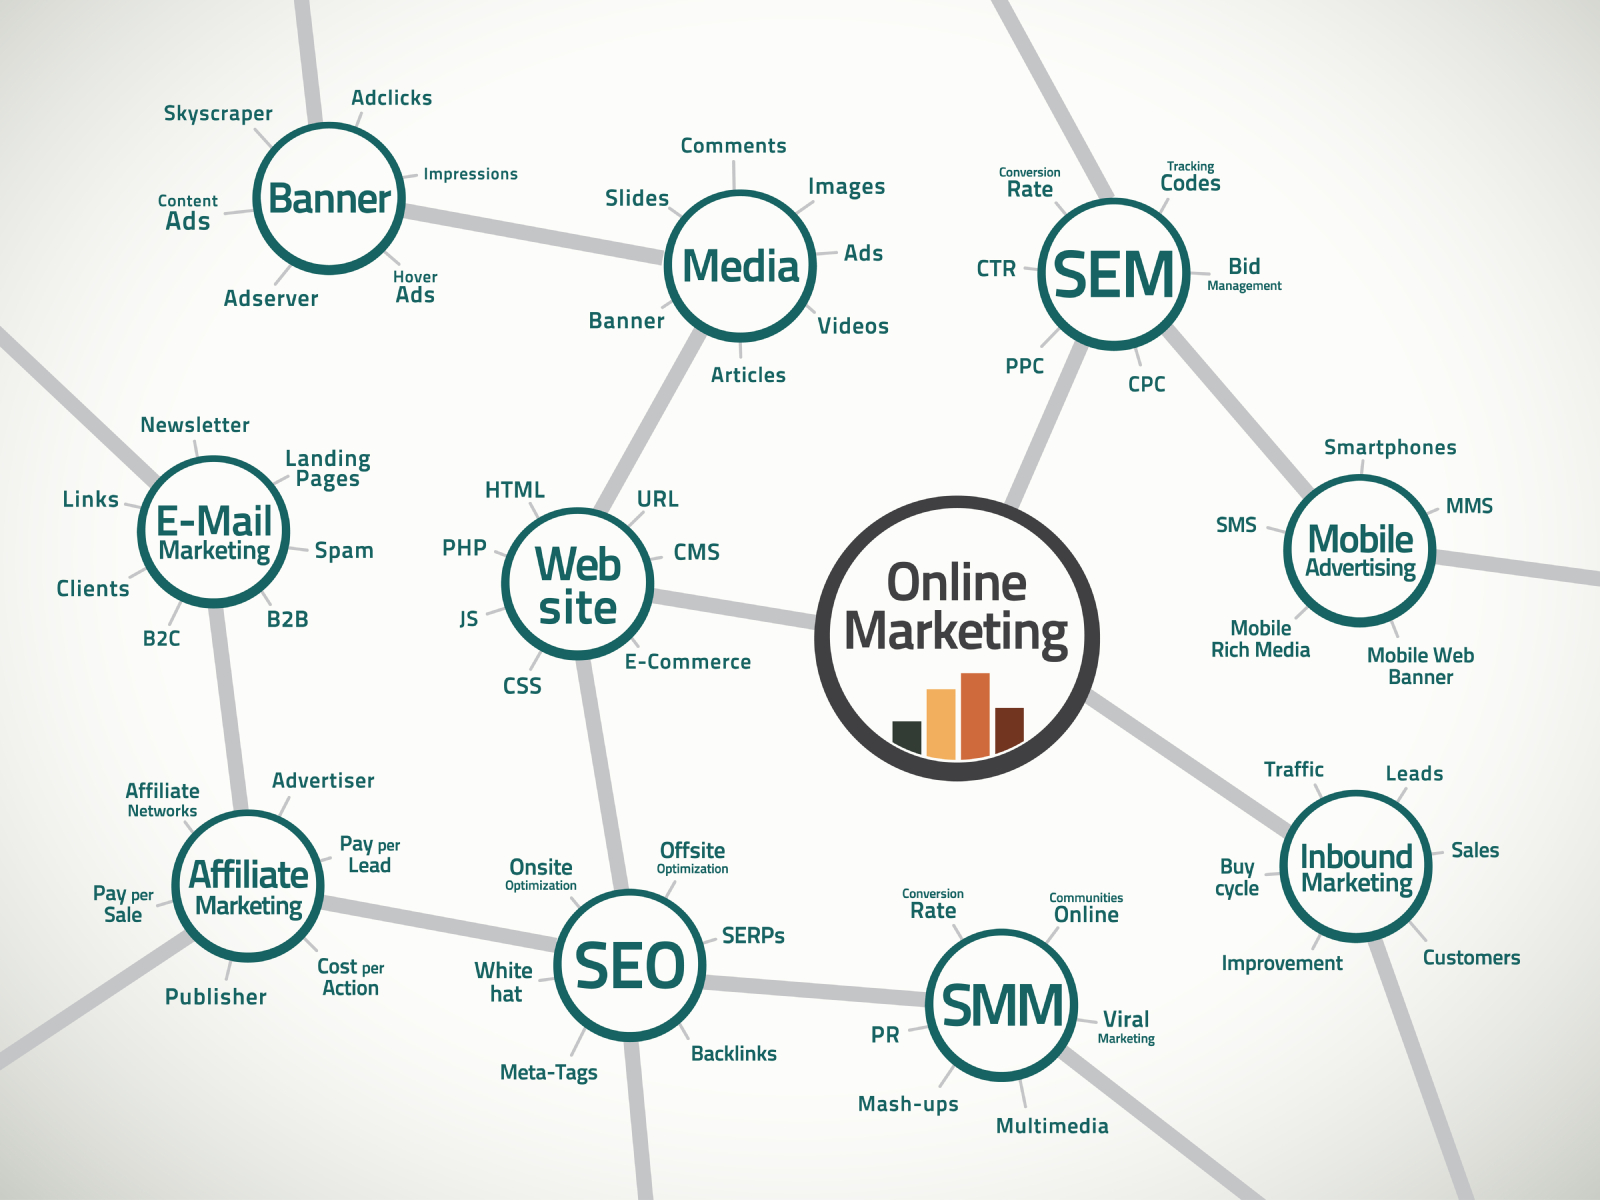 Online marketing map and terms via #hshdsh for @blogs4bytes